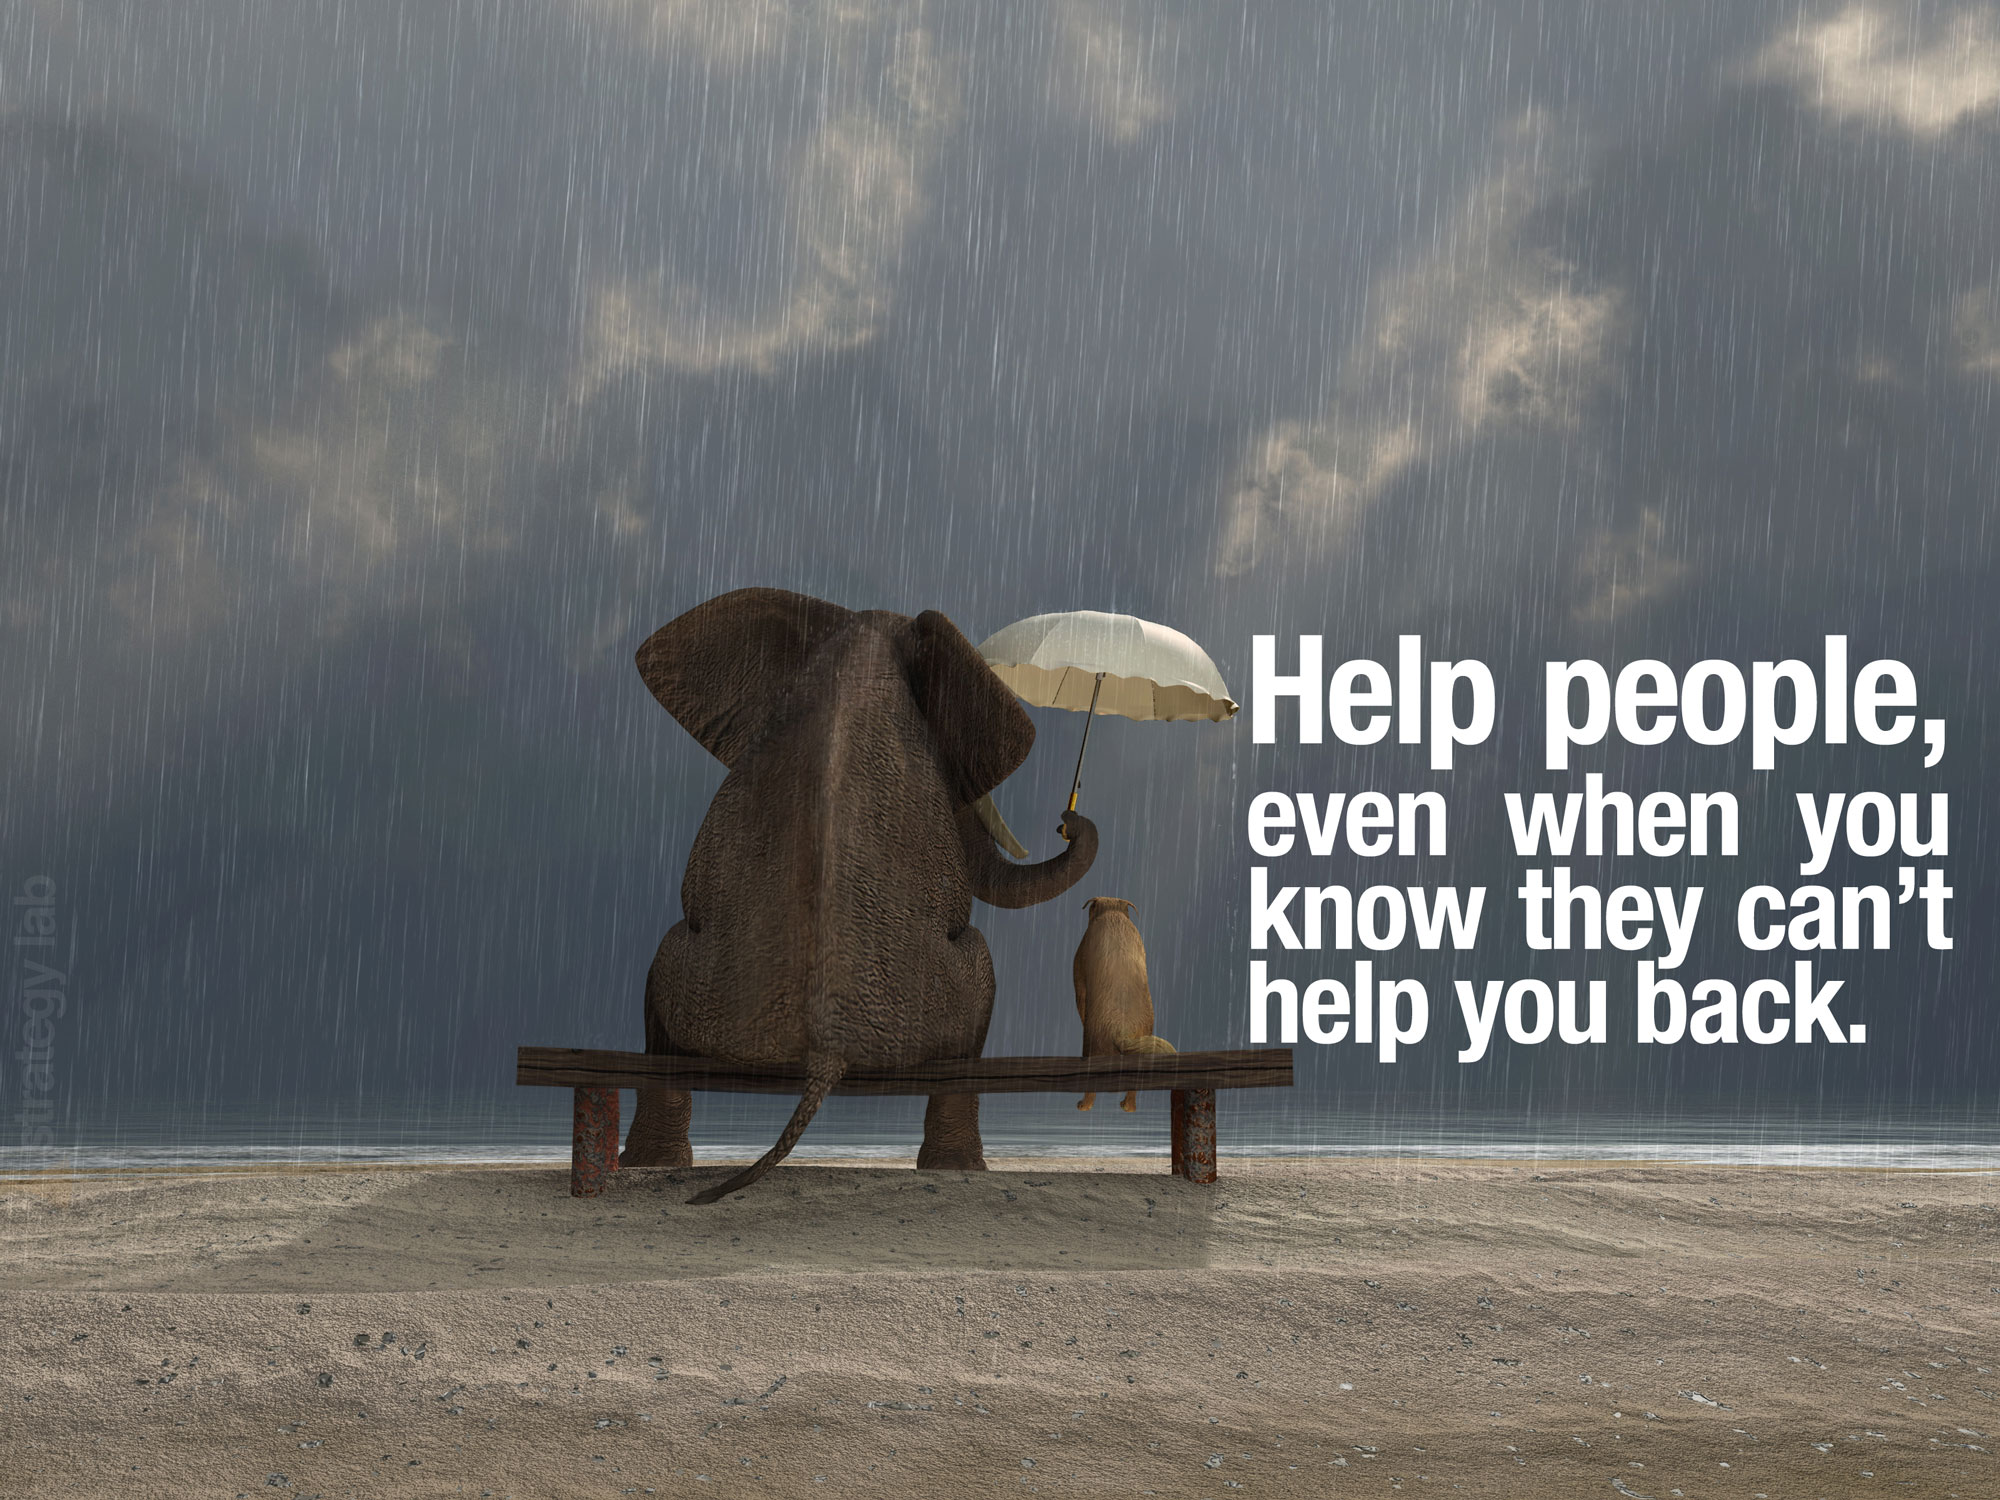 help-people-even-when-they-cant-help-you-back